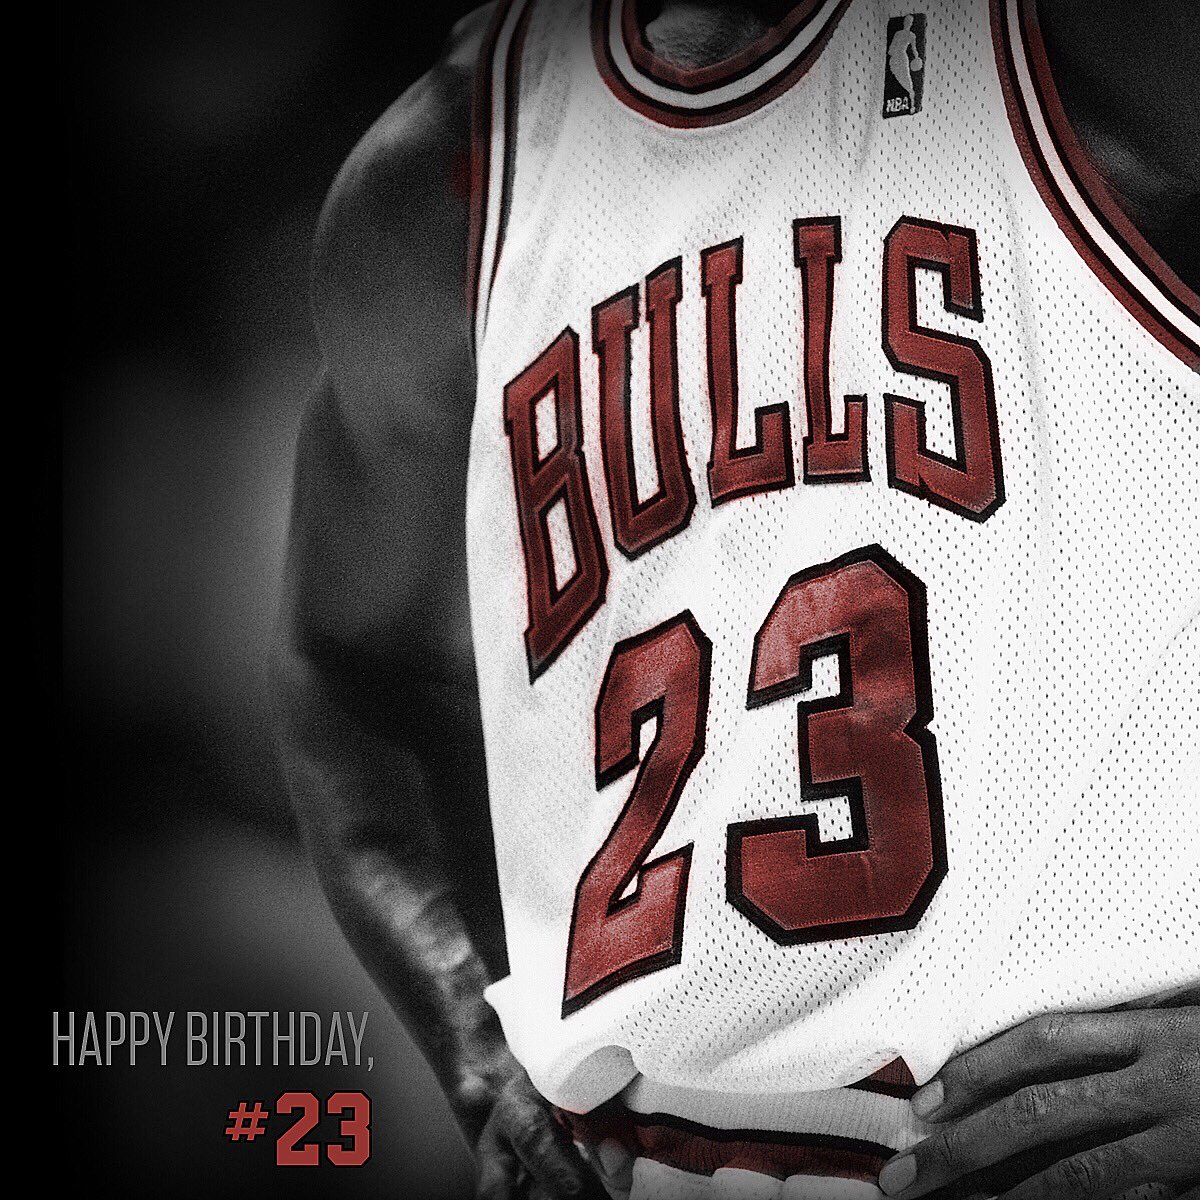 Happy Birthday, MJ! https://t.co/2ZpwgWwQCr